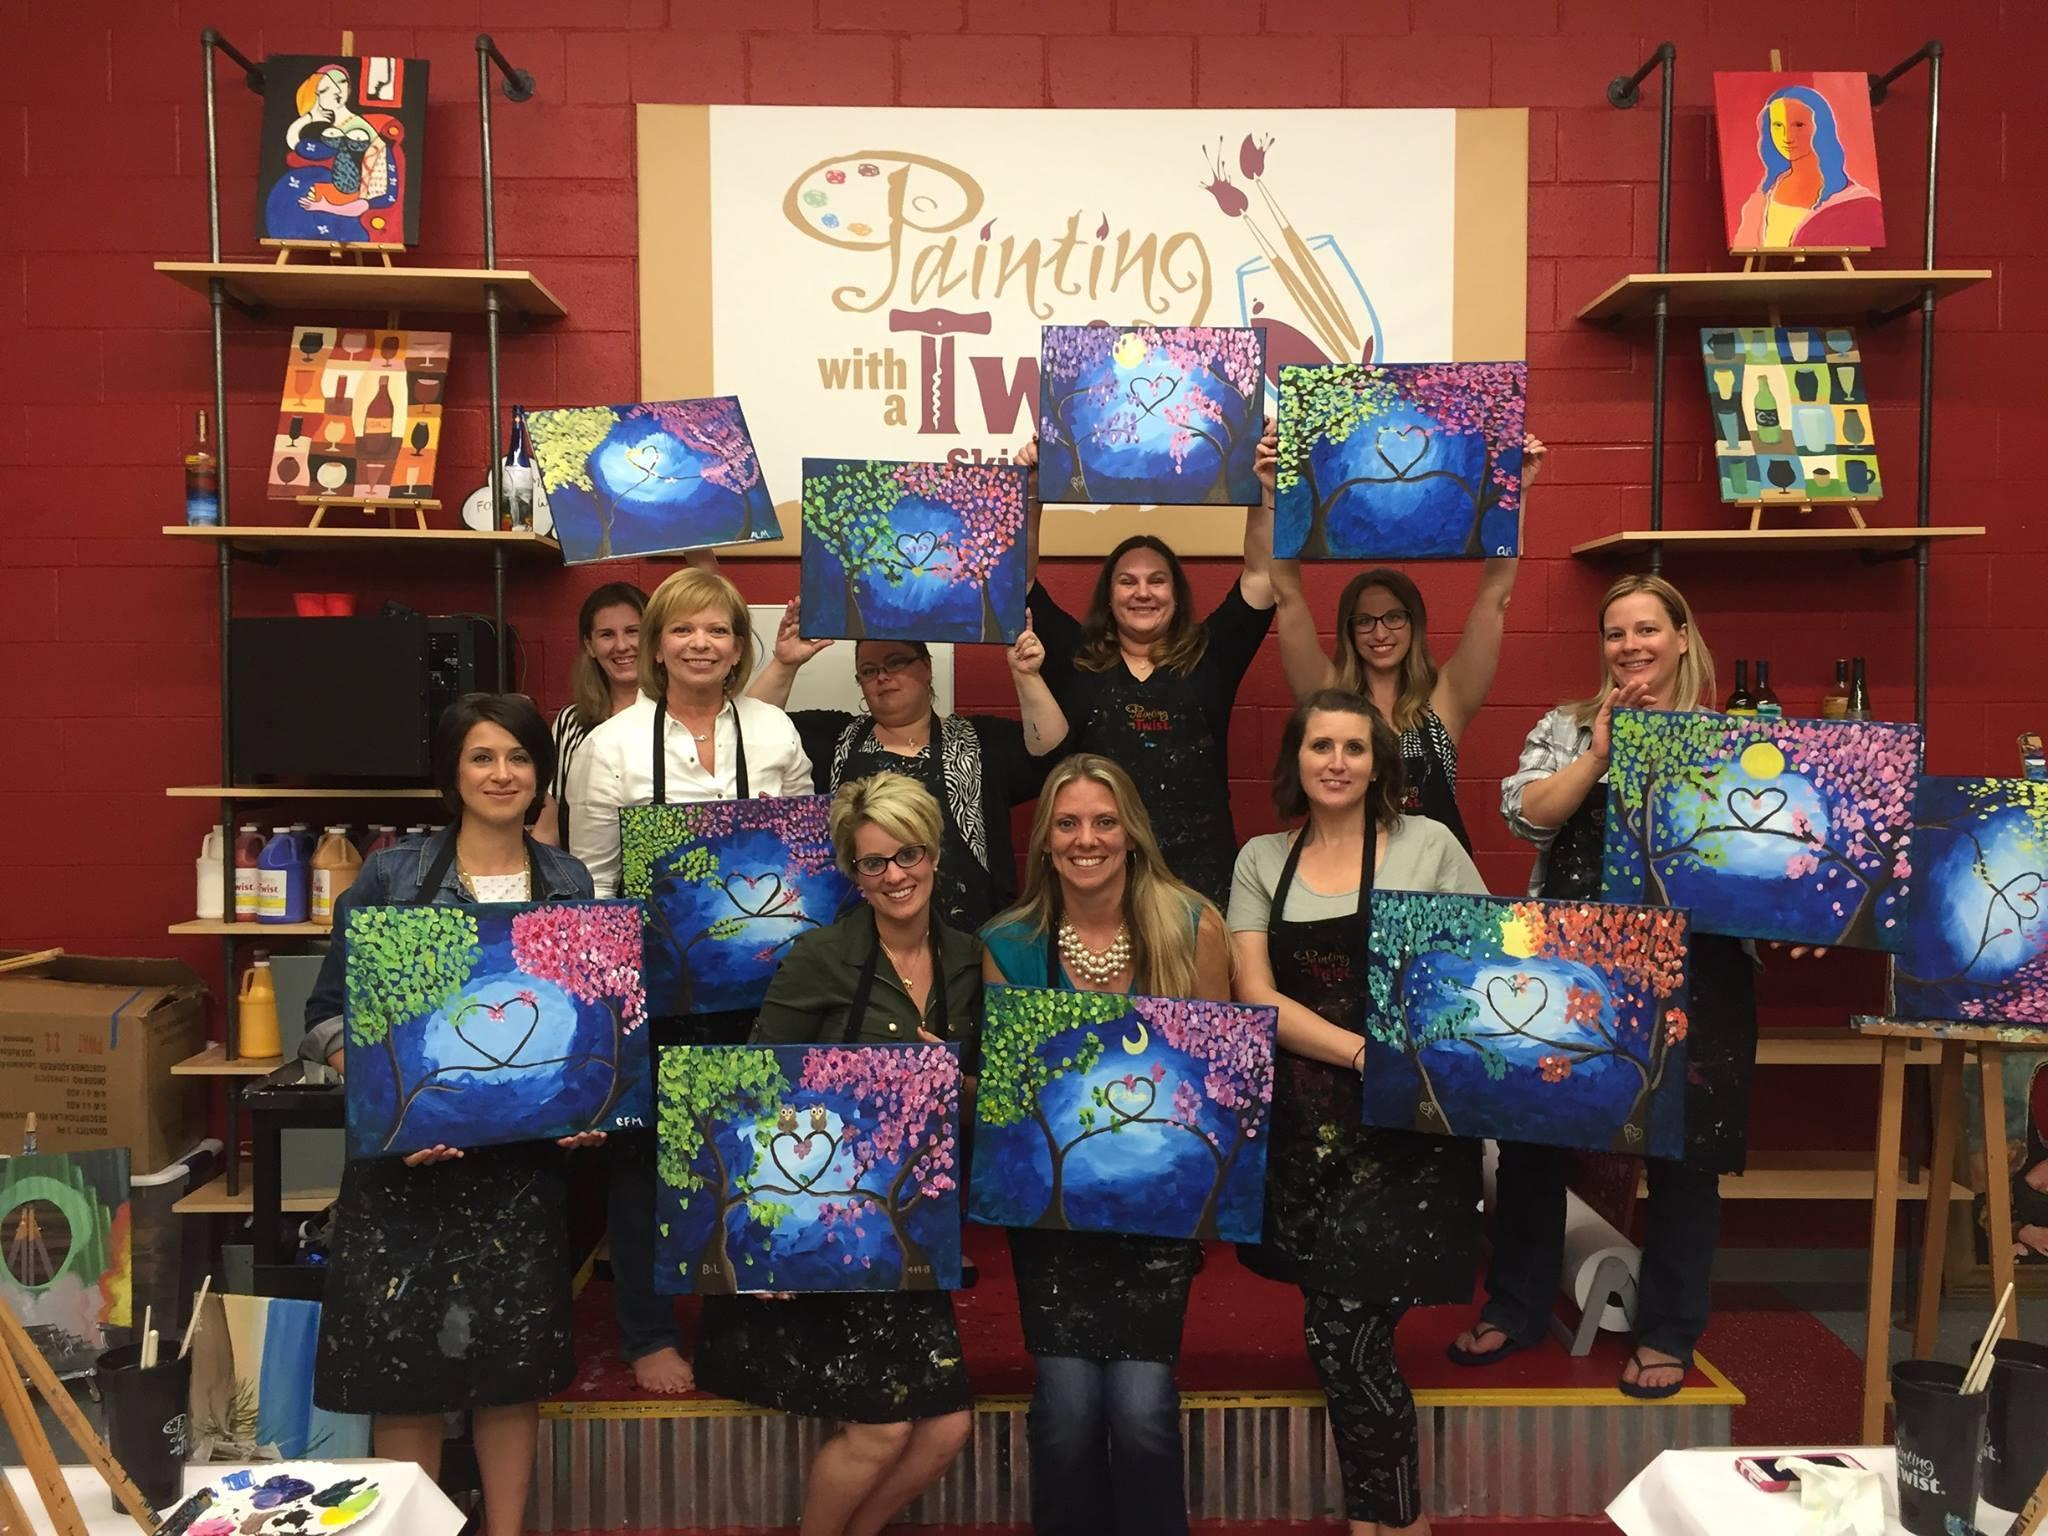 Painting with a twist in schwenksville pa whitepages for Painting with a twist chicago